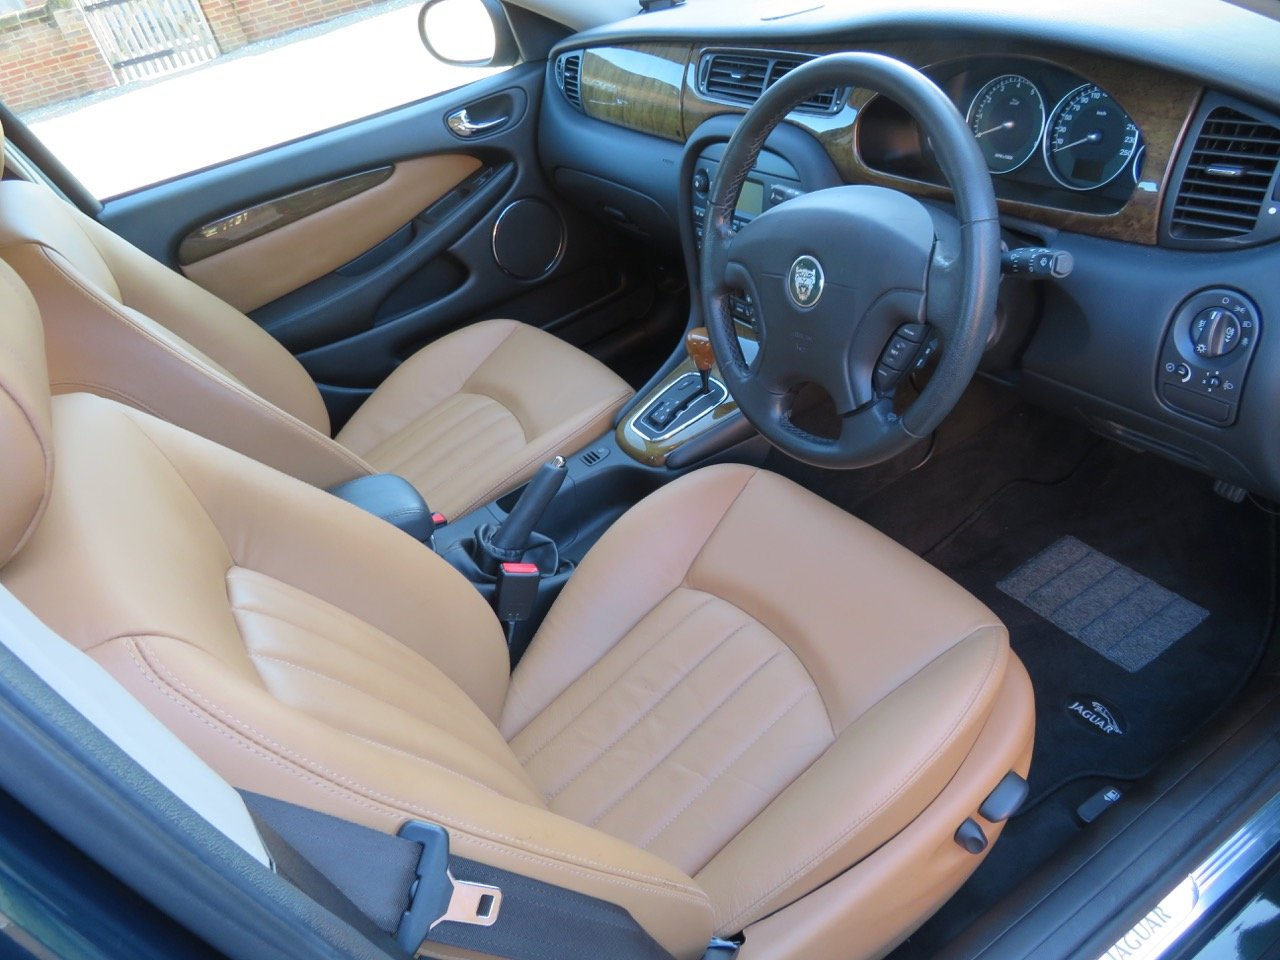 JAGUAR X-TYPE 3.0 V6 AUTO SE 2002 18K MILES FROM NEW 1 OWNER For Sale (picture 2 of 6)